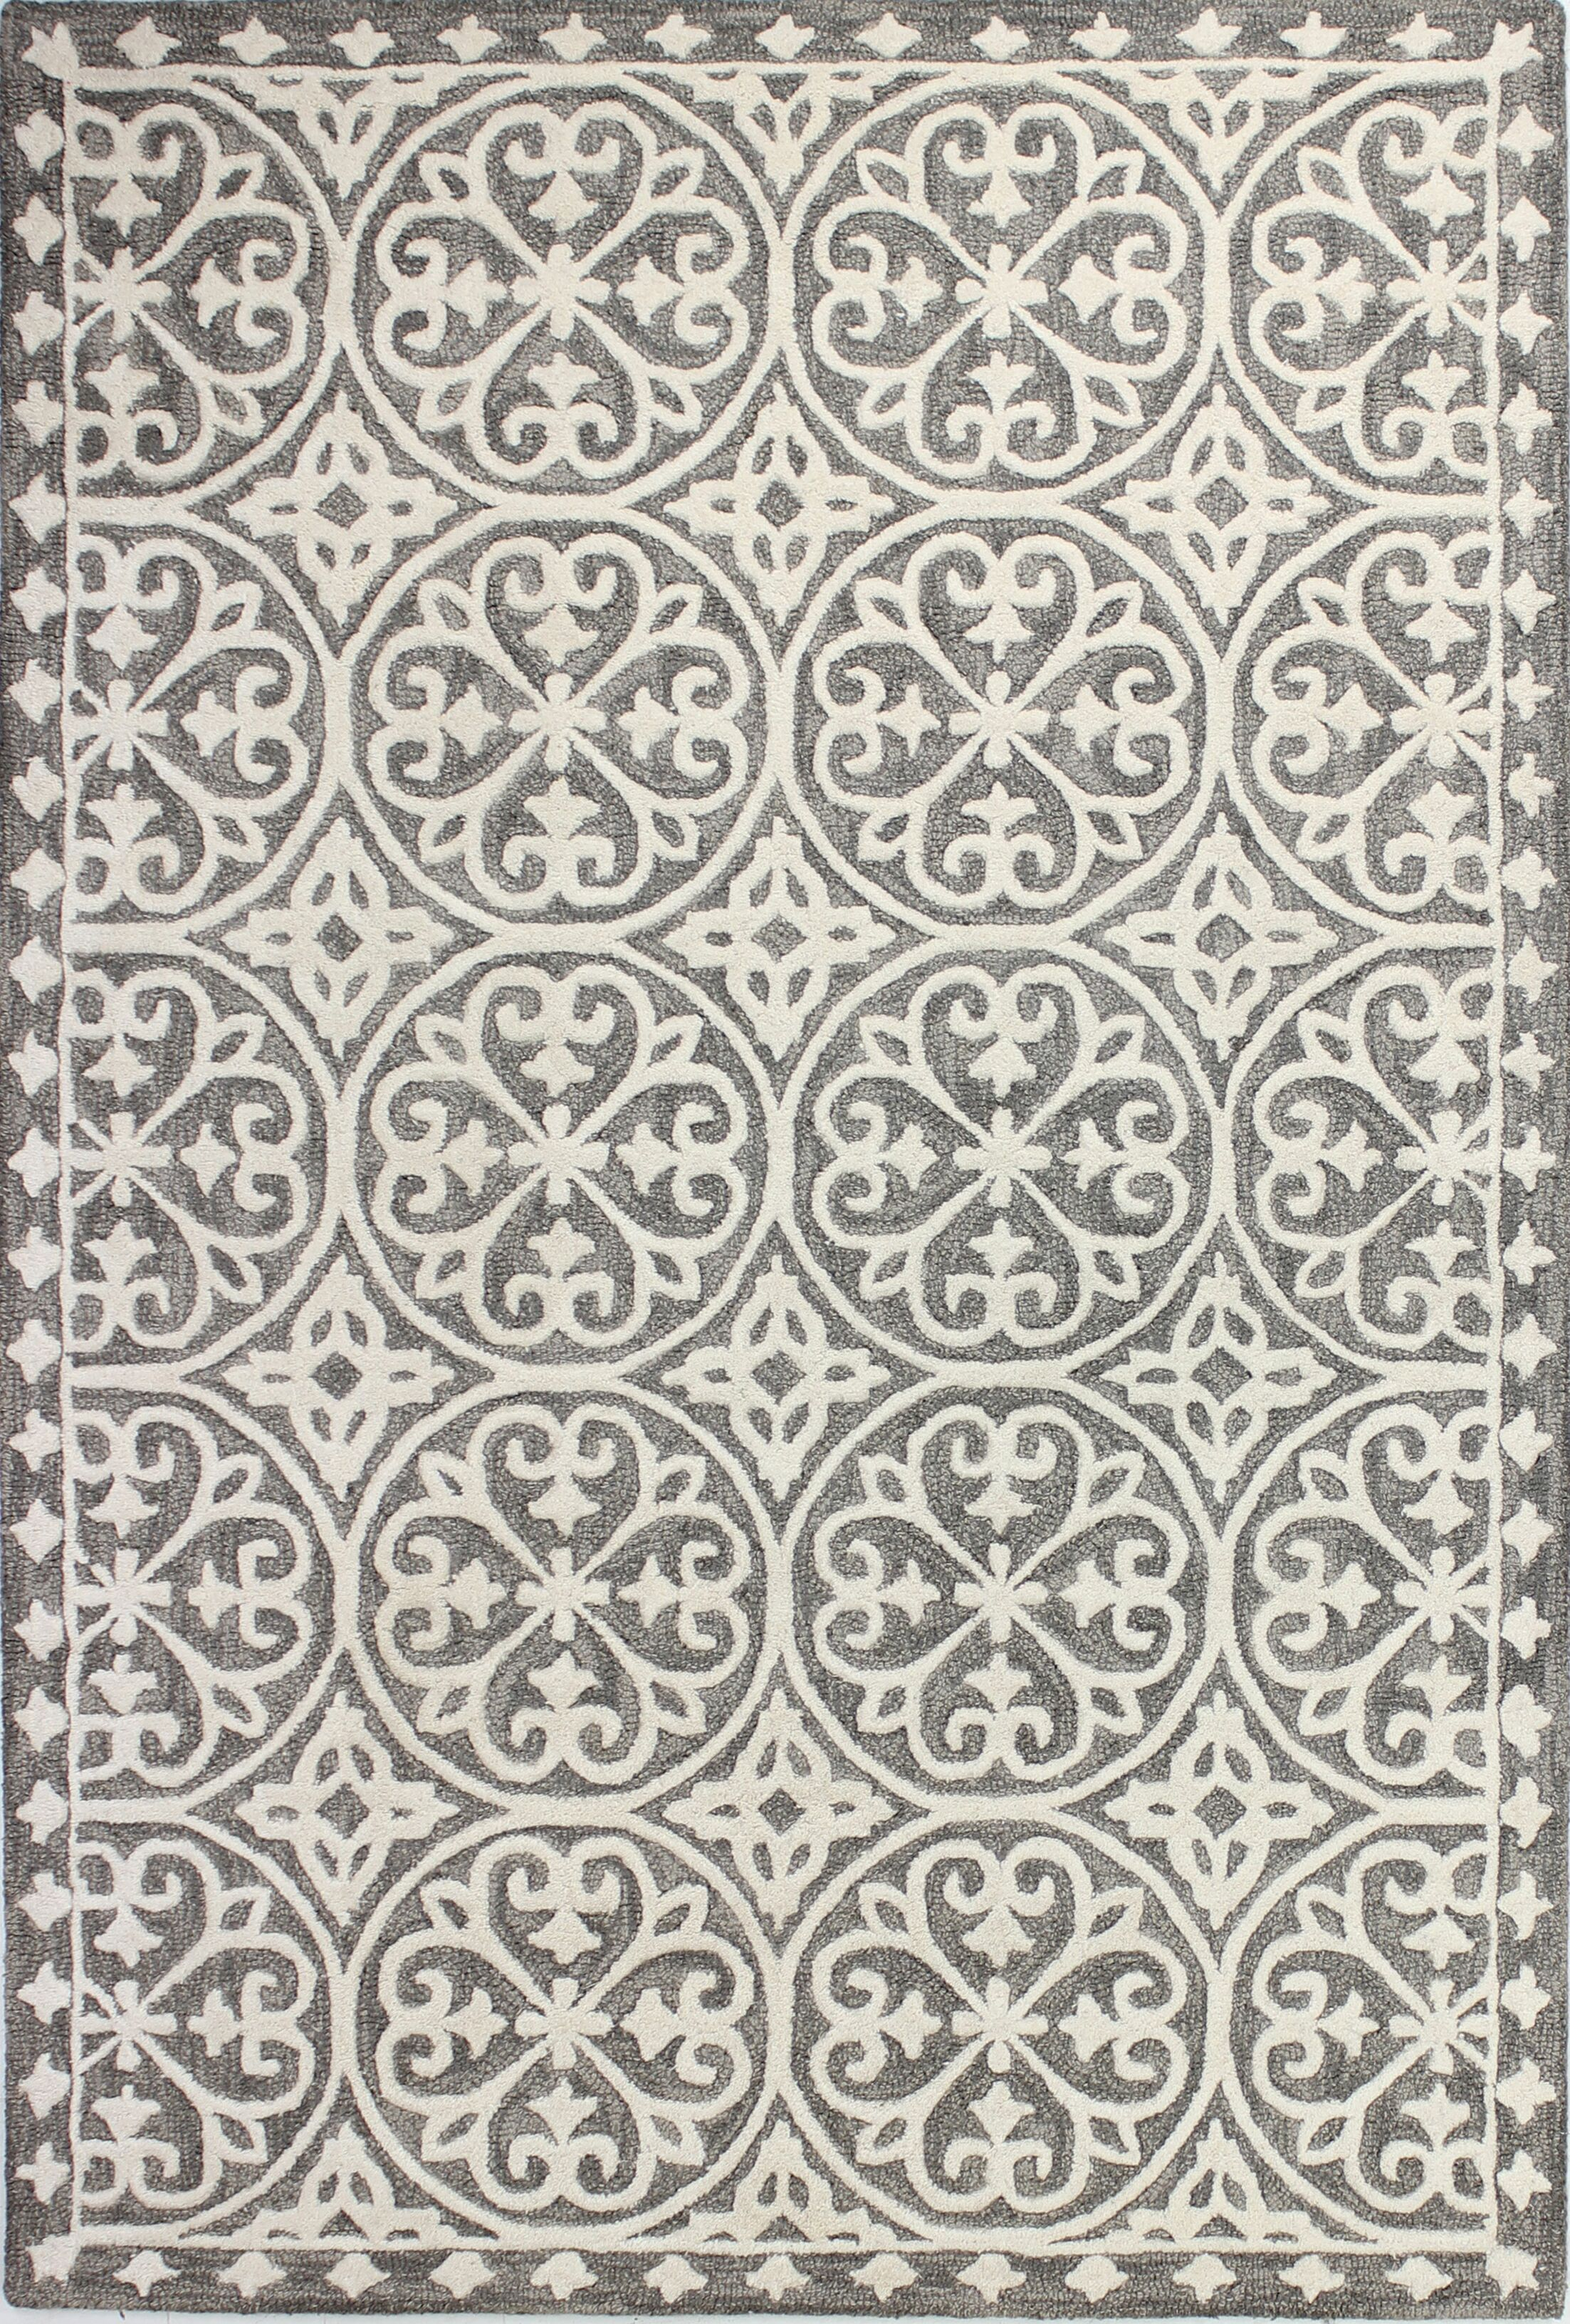 Dormont Hand-Tufted Gray Area Rug Rug Size: 5' x 7'6